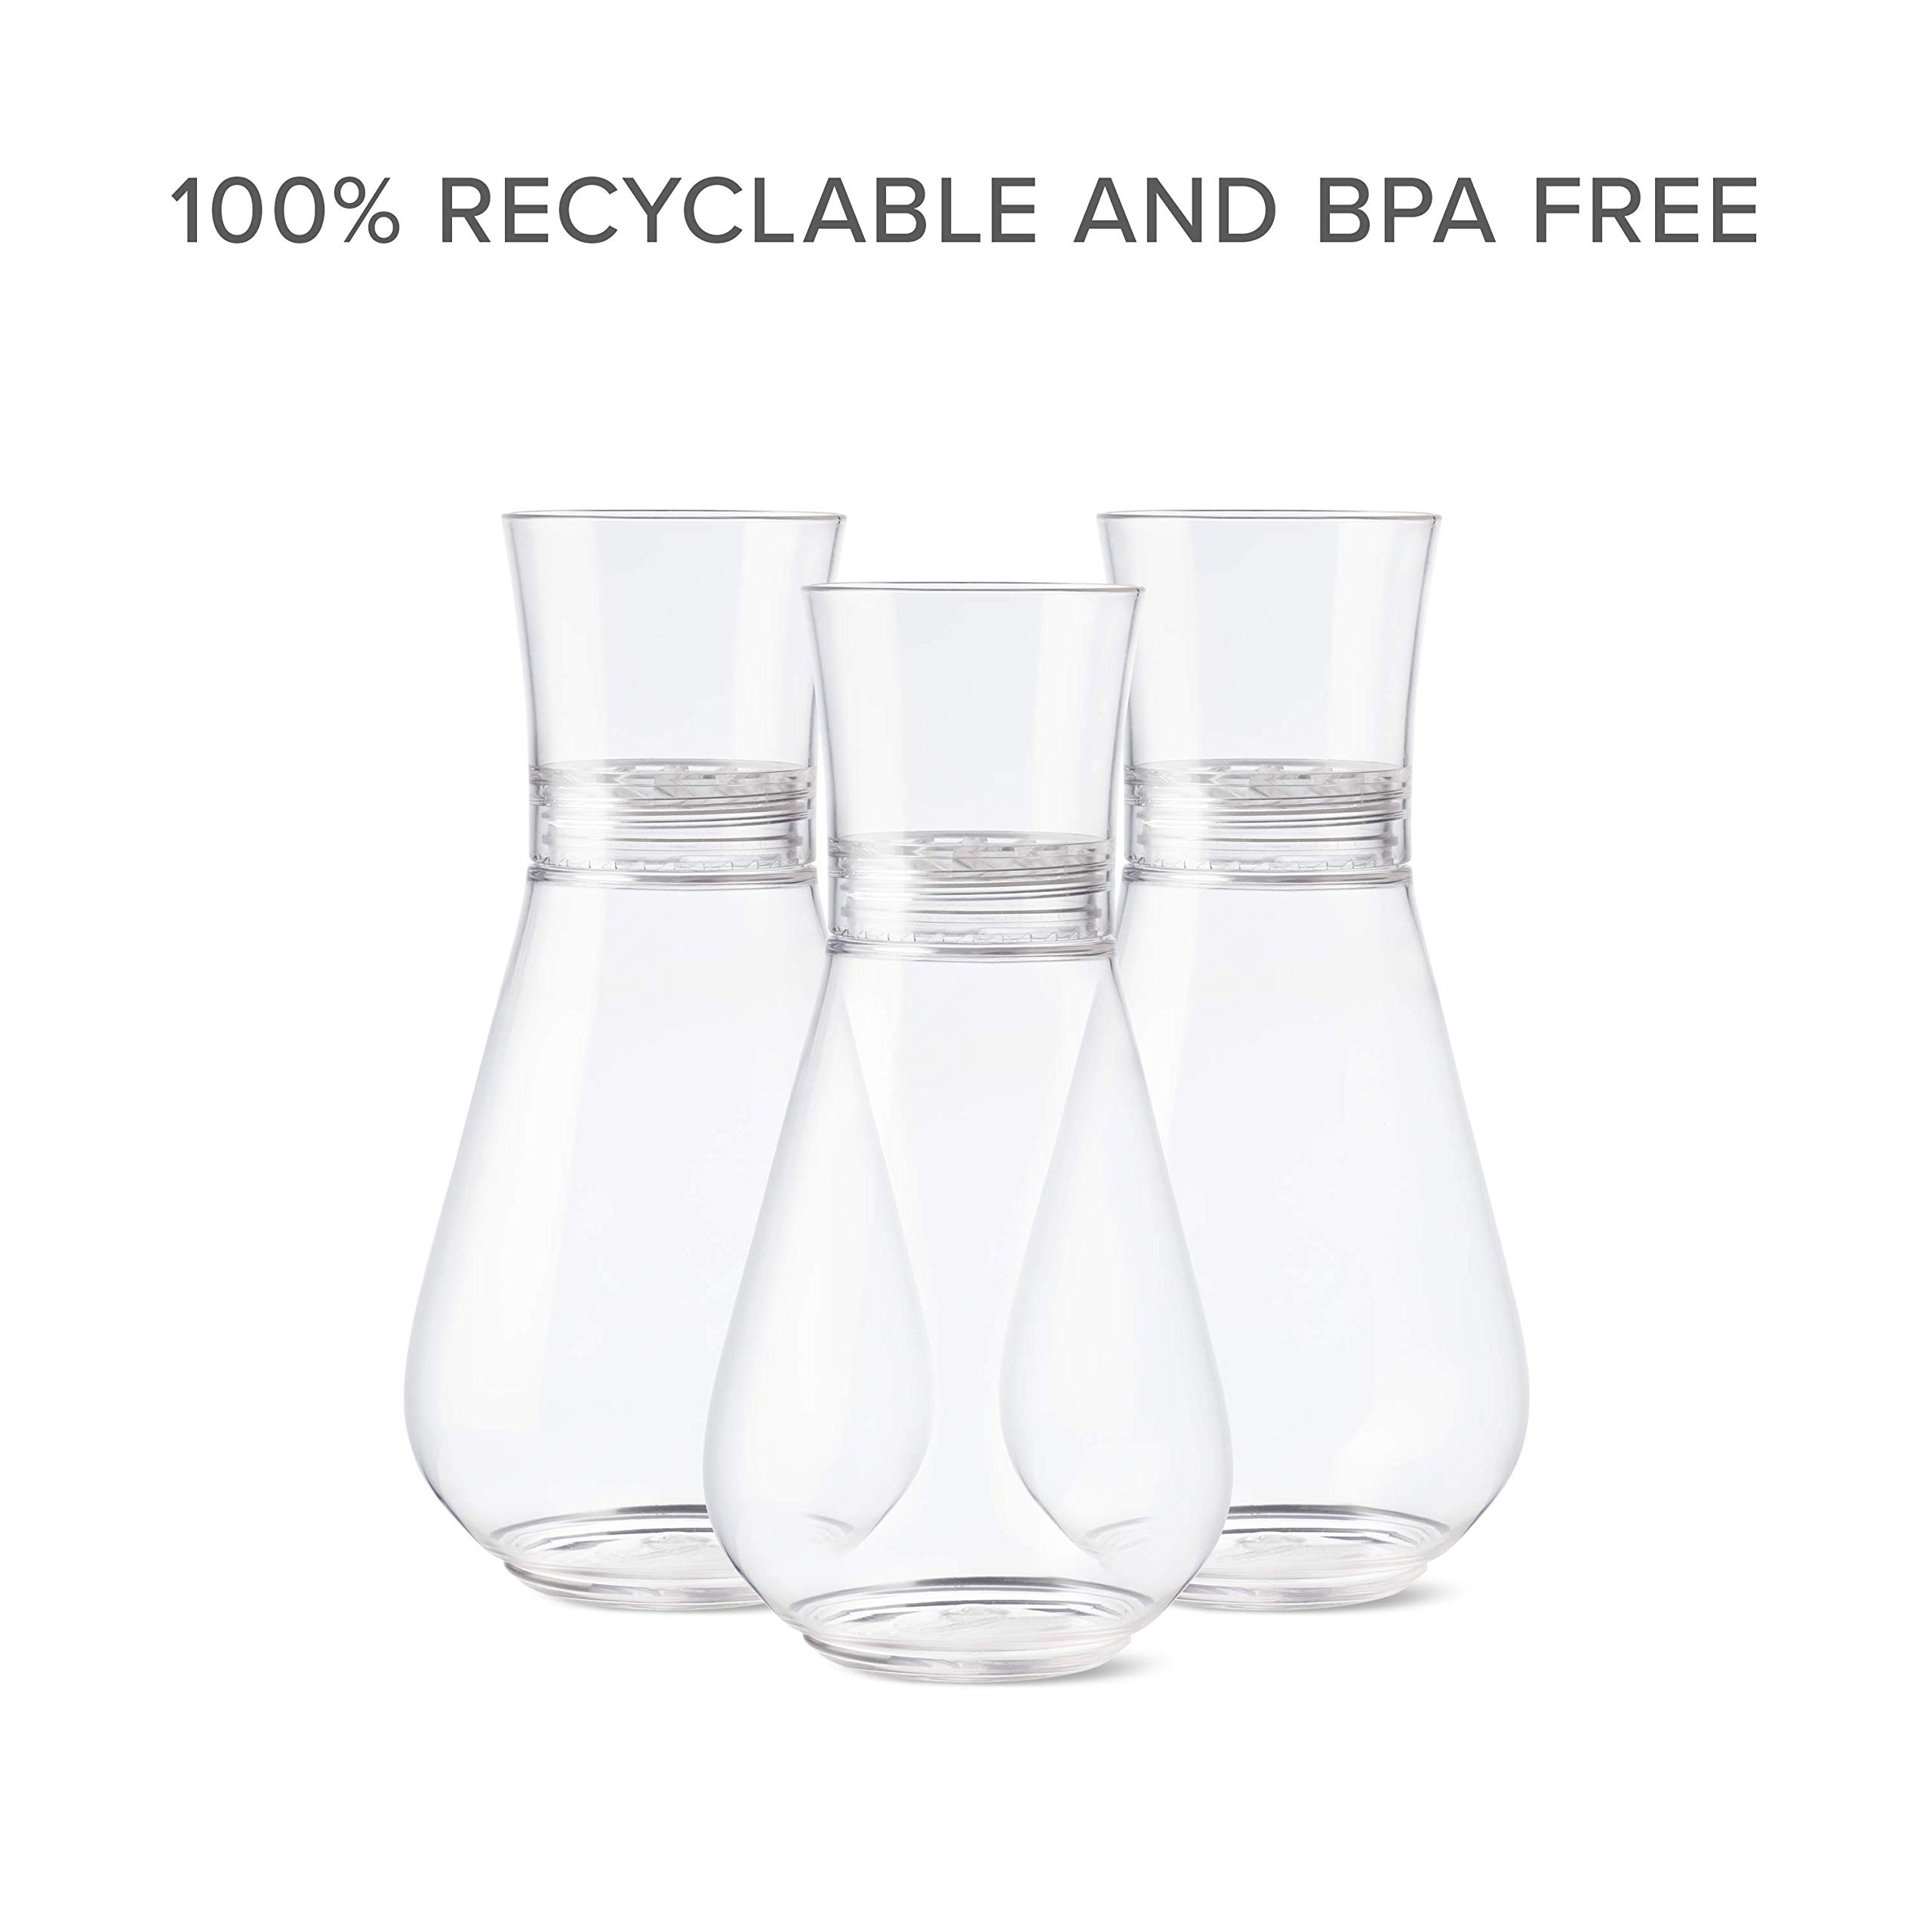 TOSSWARE 28oz Decanter plus Aerator- recyclable plastic decanter- SET OF 1- shatterproof and BPA-free Aerating Decanter by TOSSWARE (Image #6)